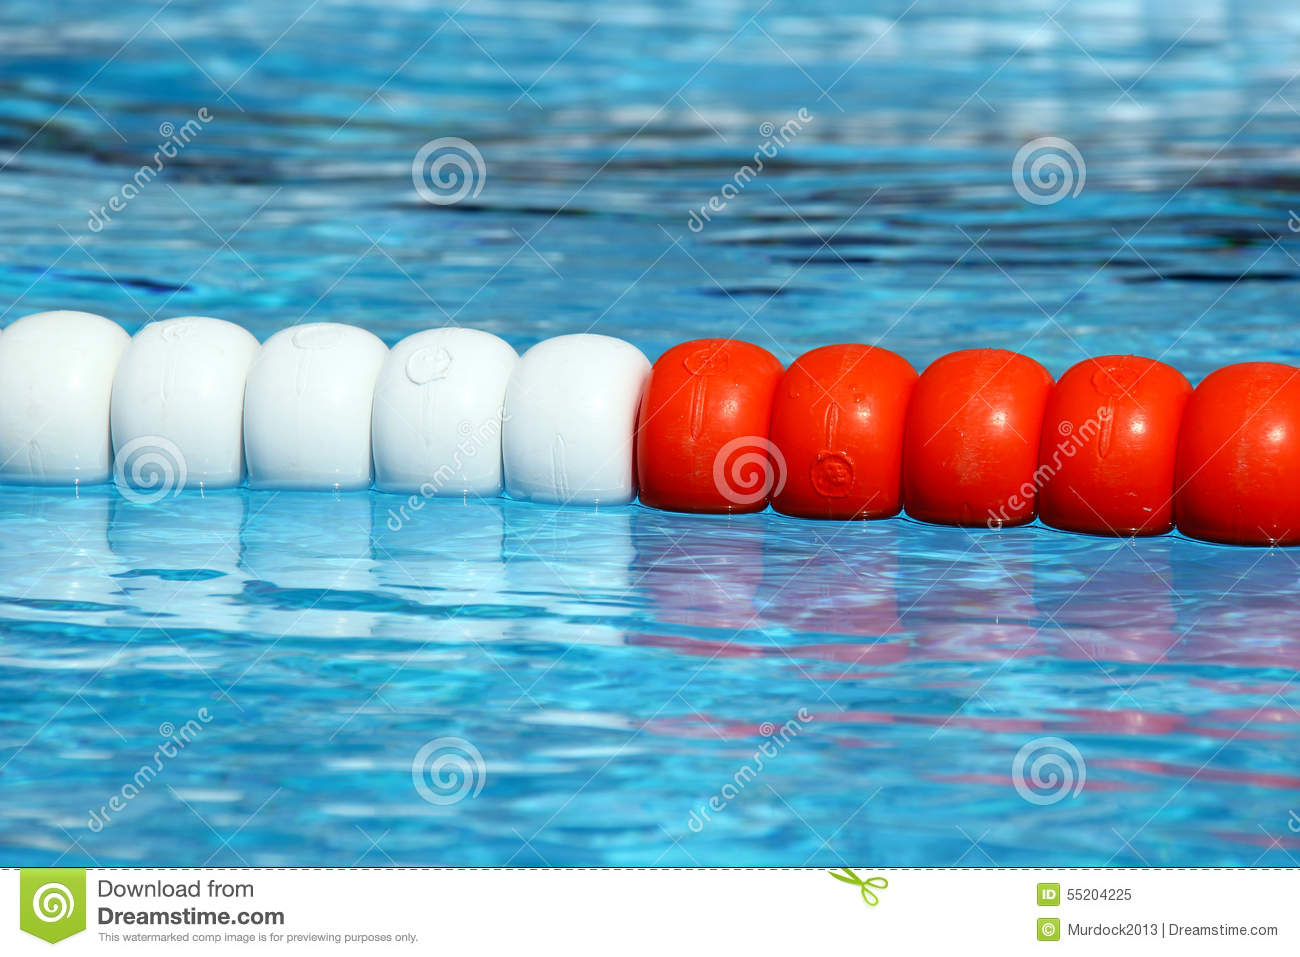 Olympic Swimming Pool Lanes swimming pool lane ropes stock photo - image: 55204225